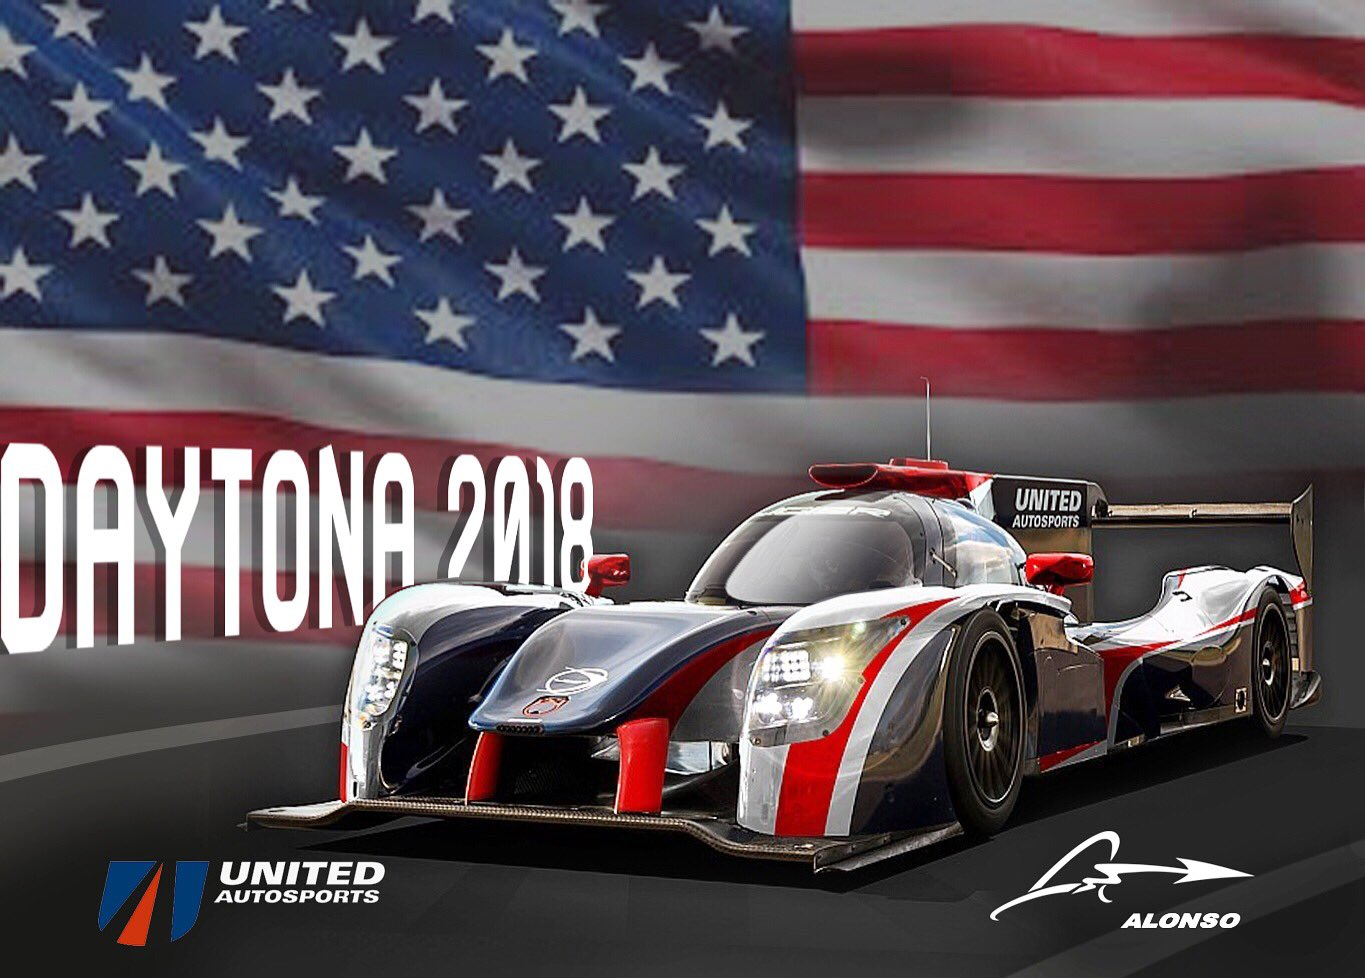 alonso united autosports team up for rolex 24 hours of daytona racedepartment. Black Bedroom Furniture Sets. Home Design Ideas